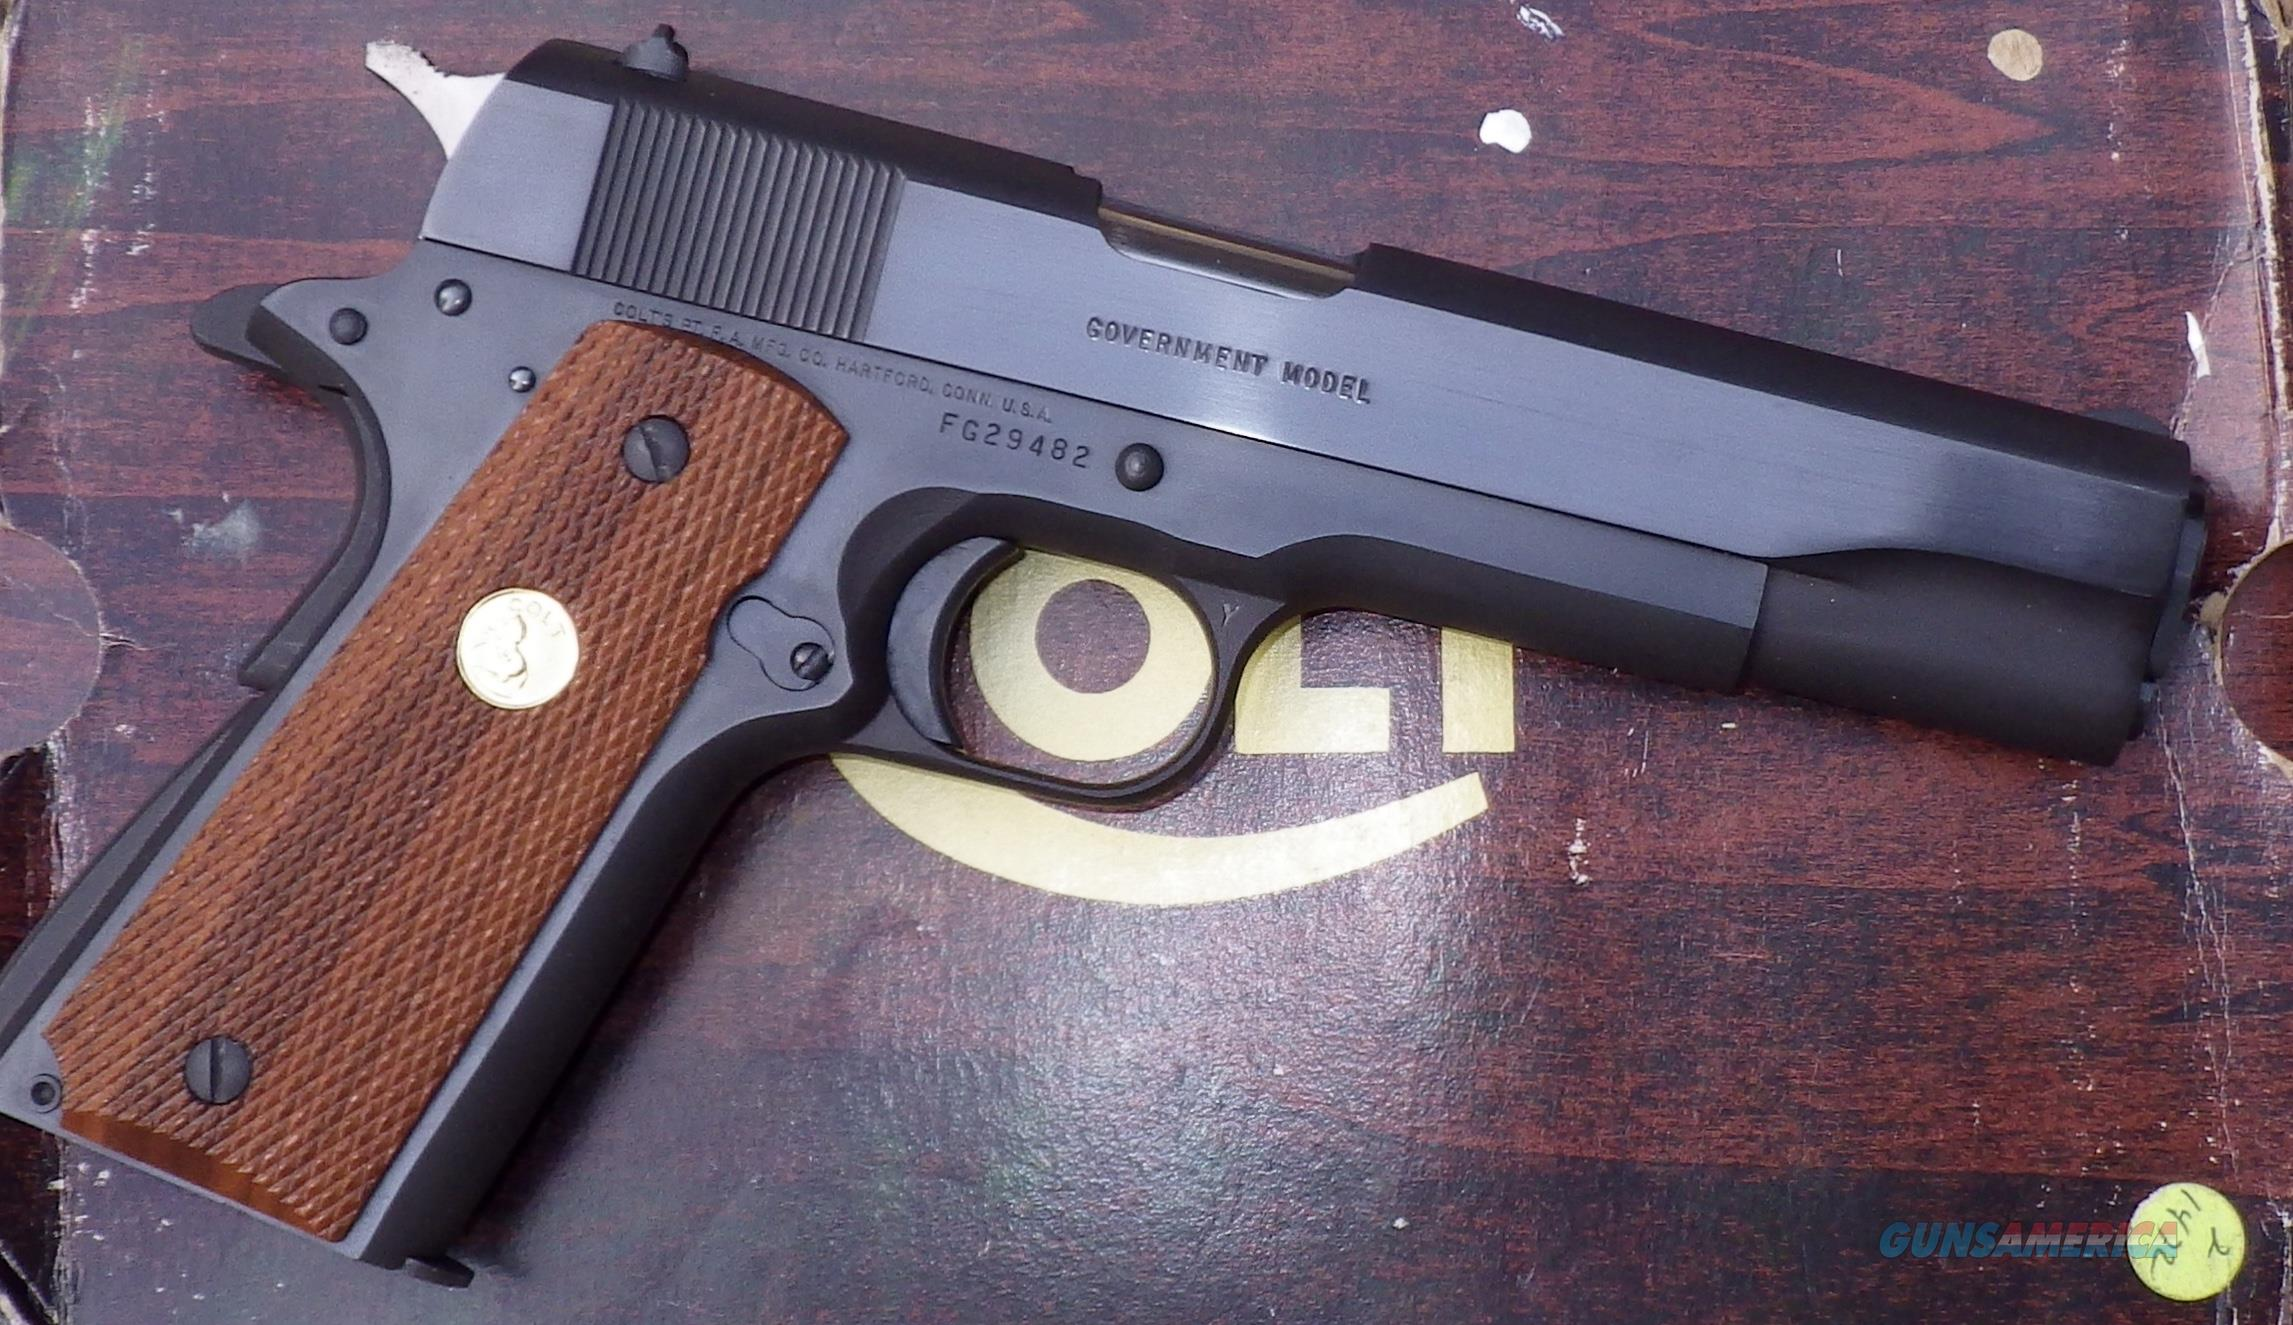 Colt 1911 .45 ACP MK IV Series 80 Government Model, New in Box, made 1985  Guns > Pistols > Colt Automatic Pistols (1911 & Var)